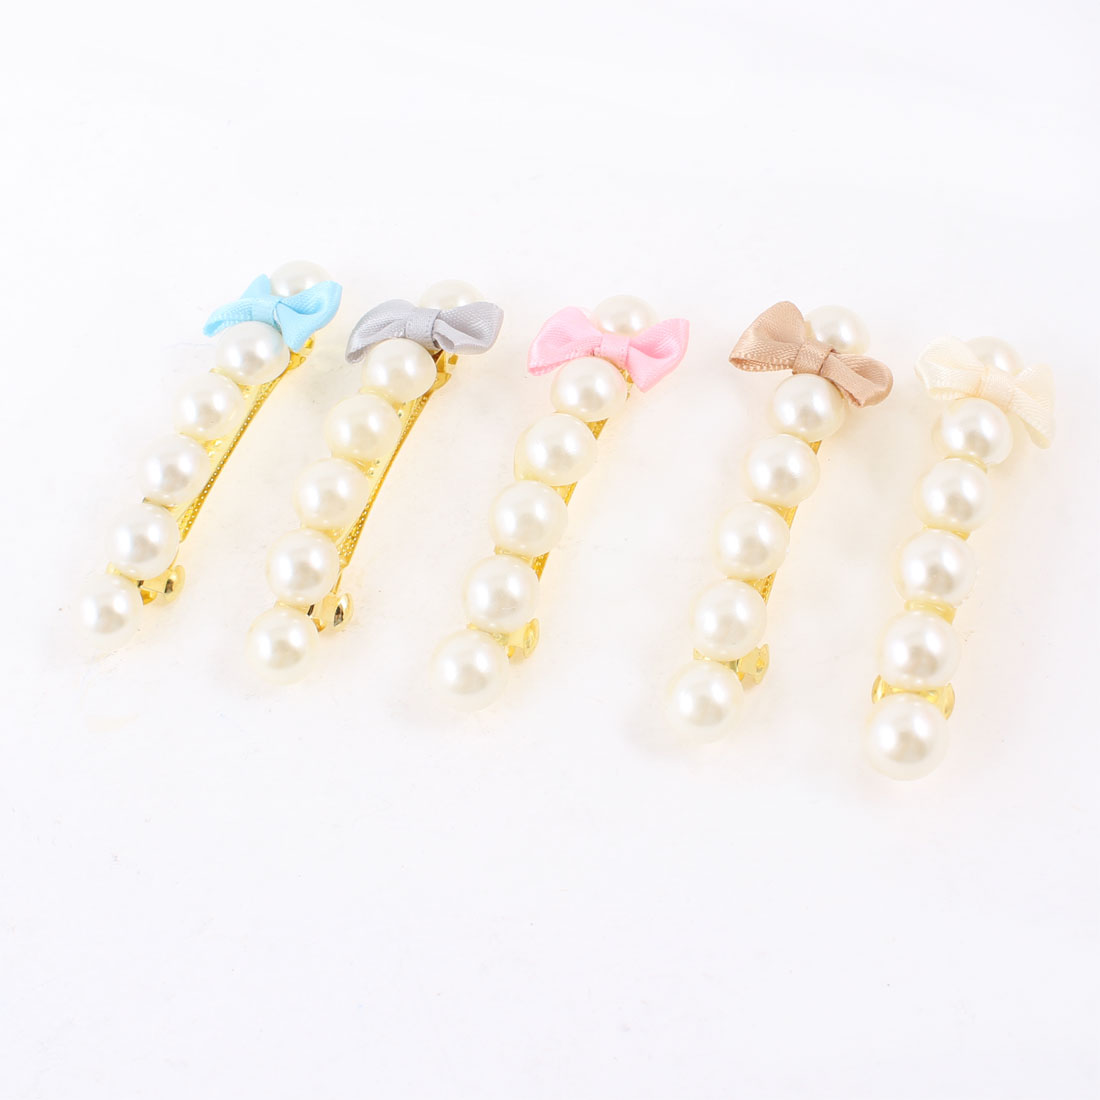 5 Pcs Assorted Color Bowknot White Faux Pearl Barrette Hairpin Hair Clip for Girl